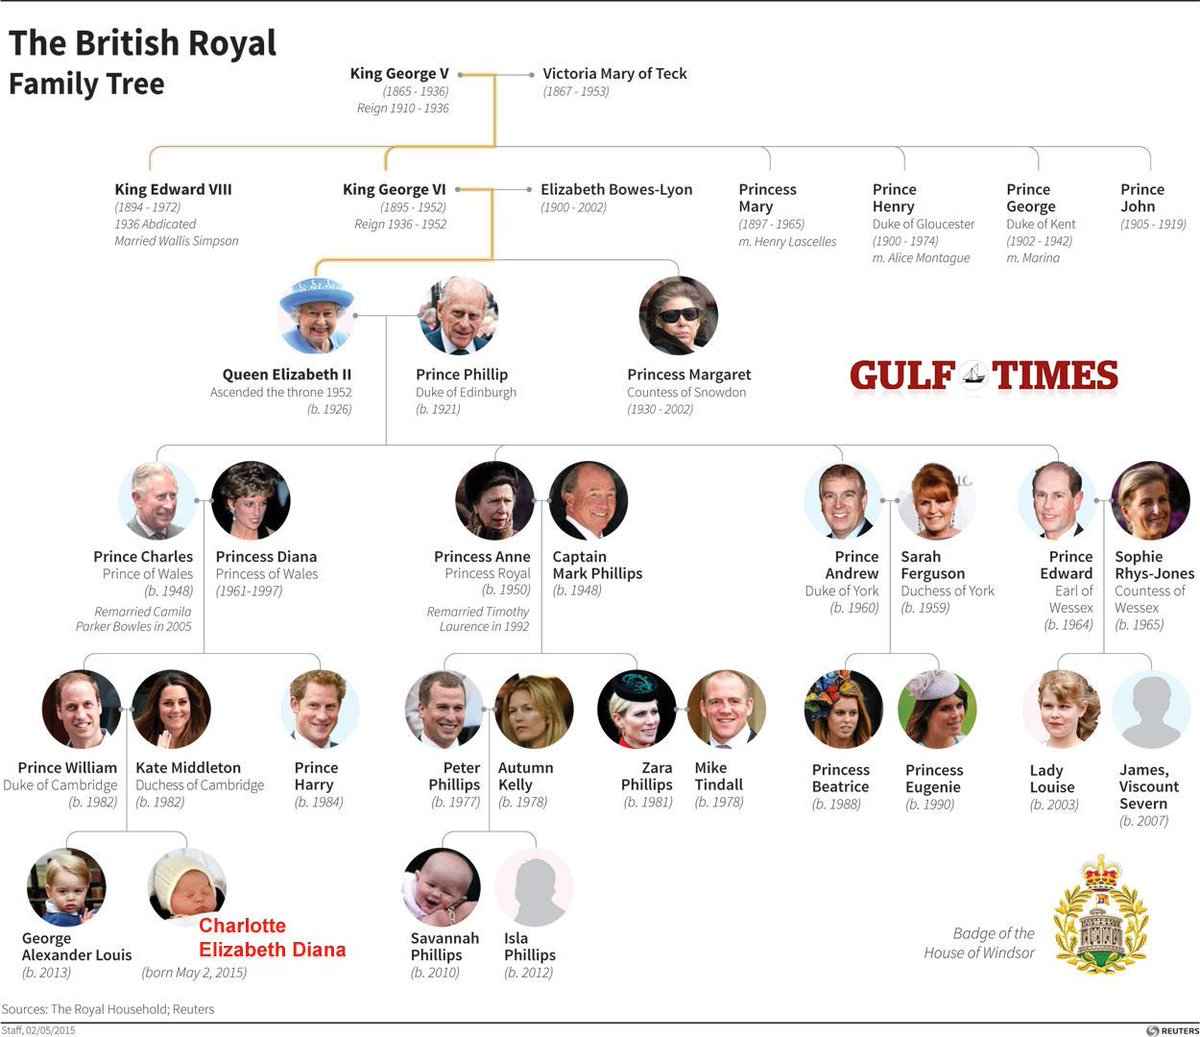 gulf times on twitter diagram of the british royal family tree london princesscharlotte http. Black Bedroom Furniture Sets. Home Design Ideas